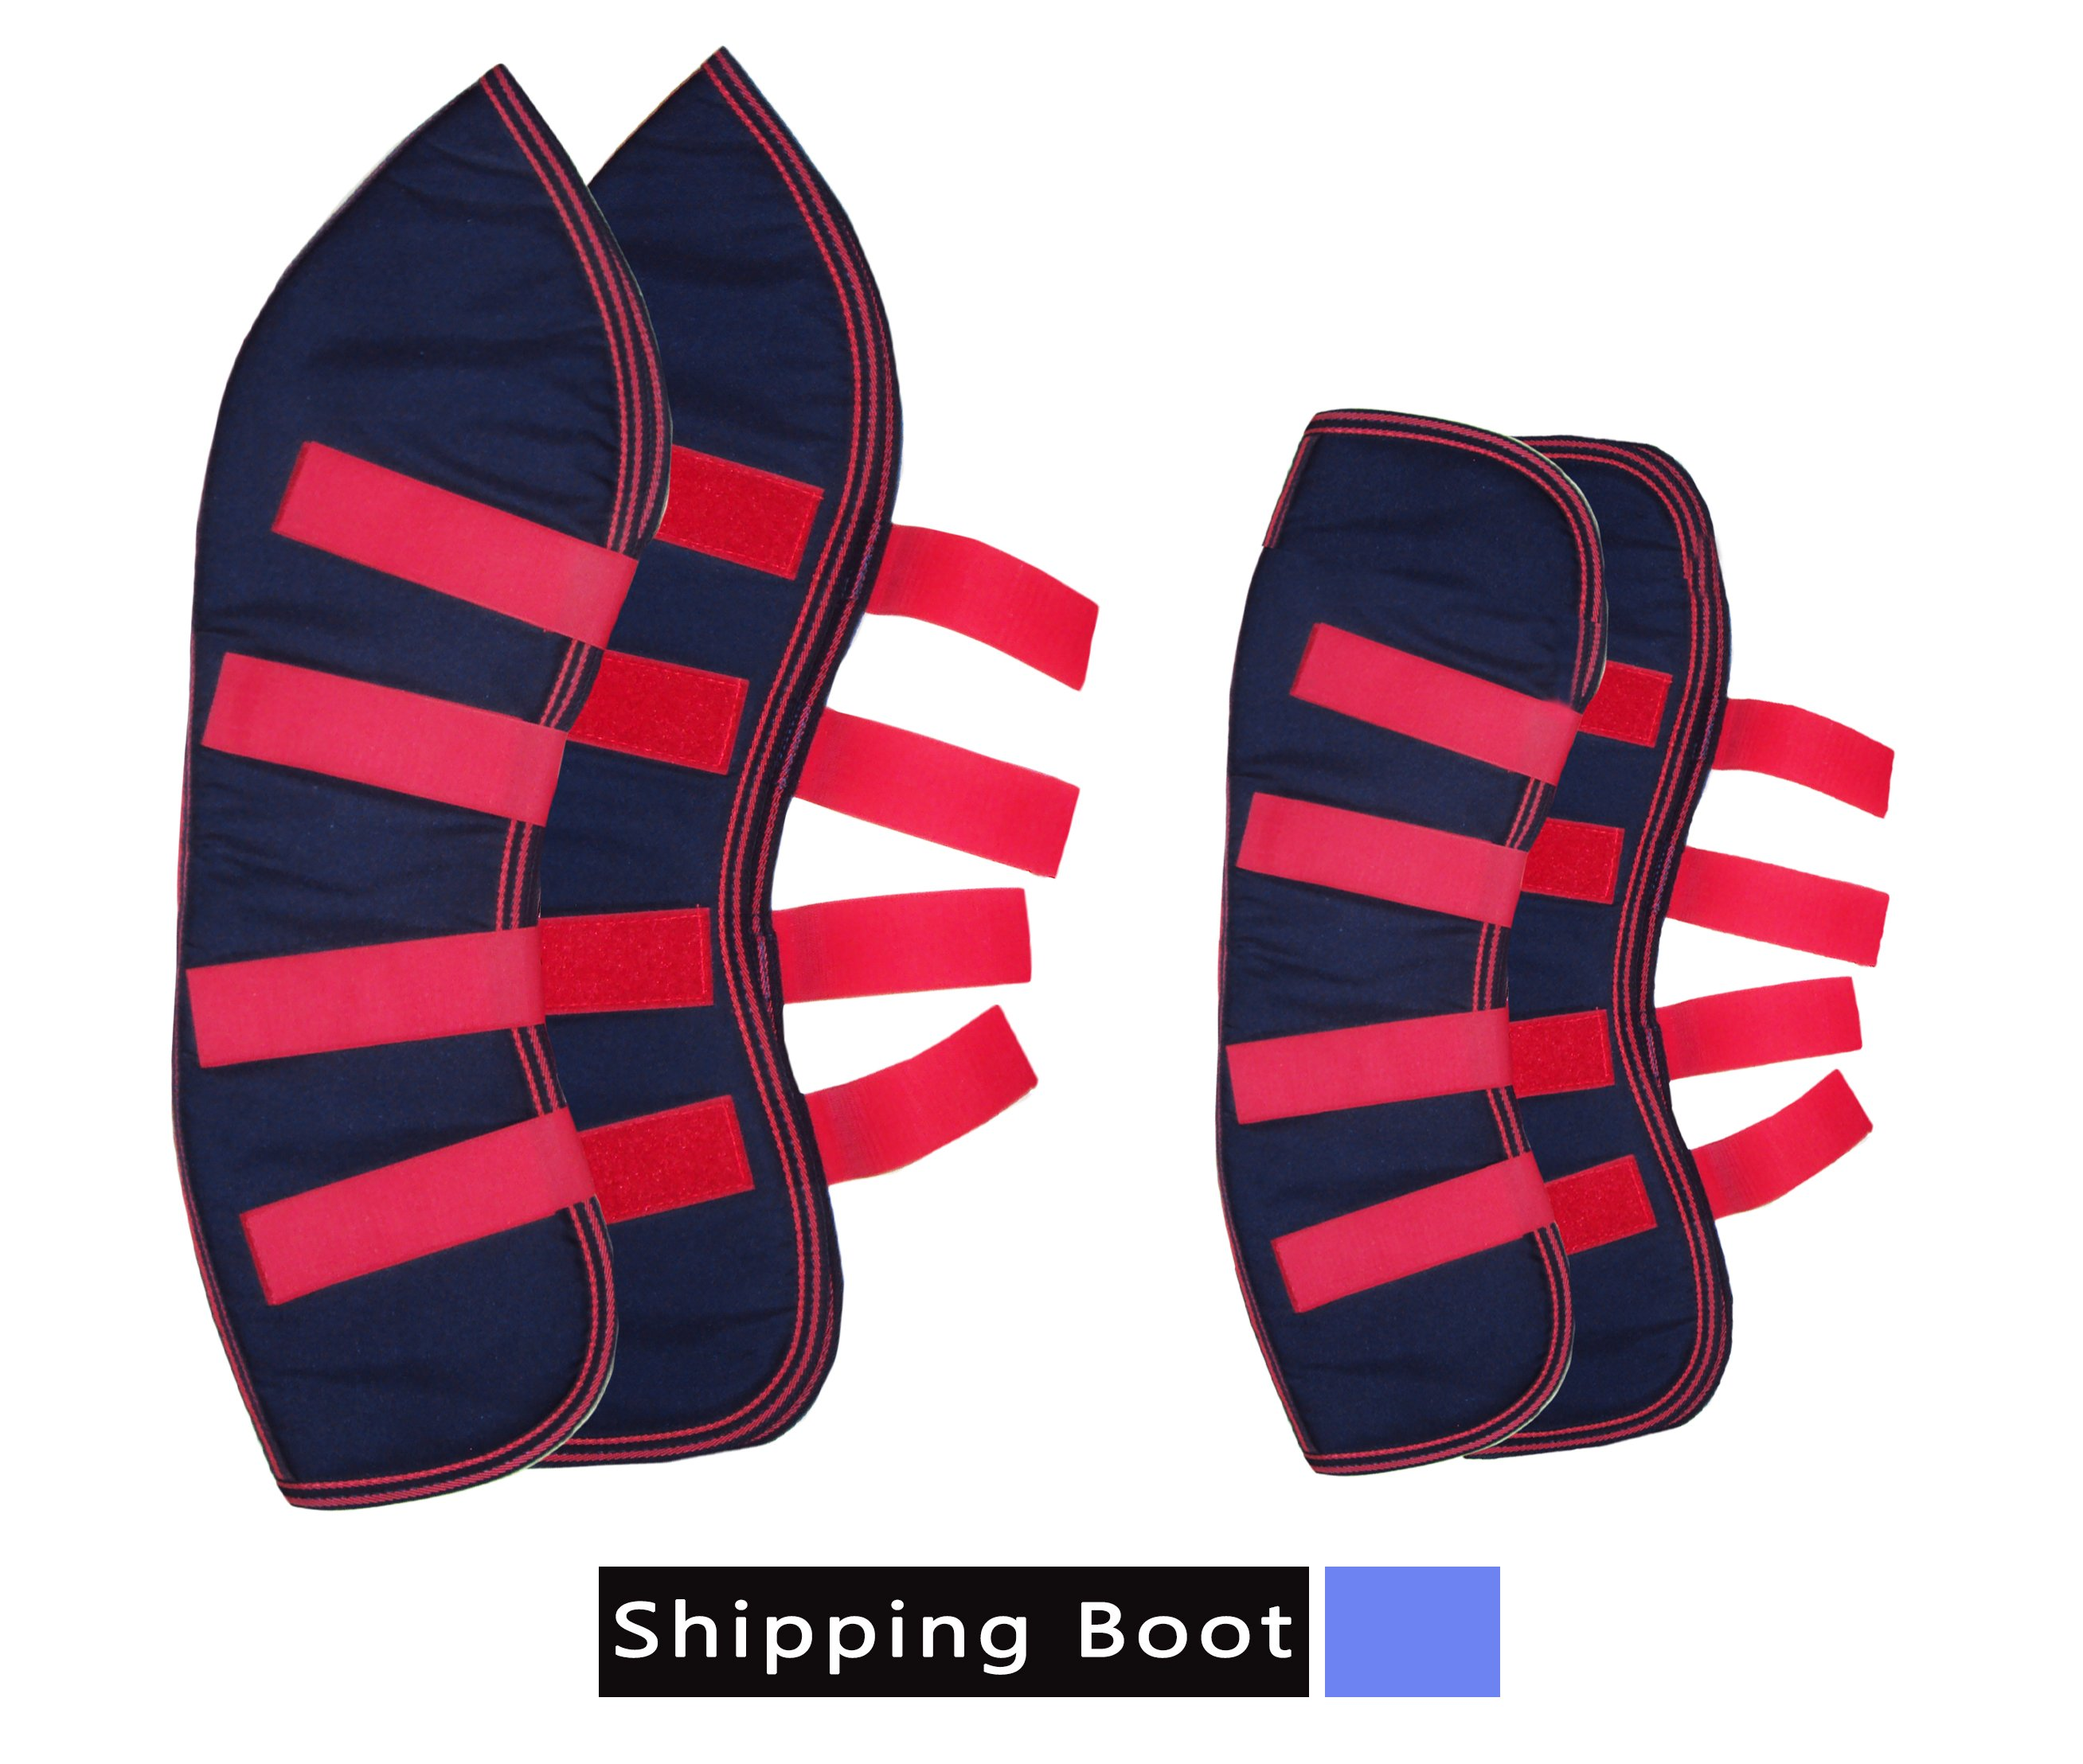 SHIPPING HORSE BOOT